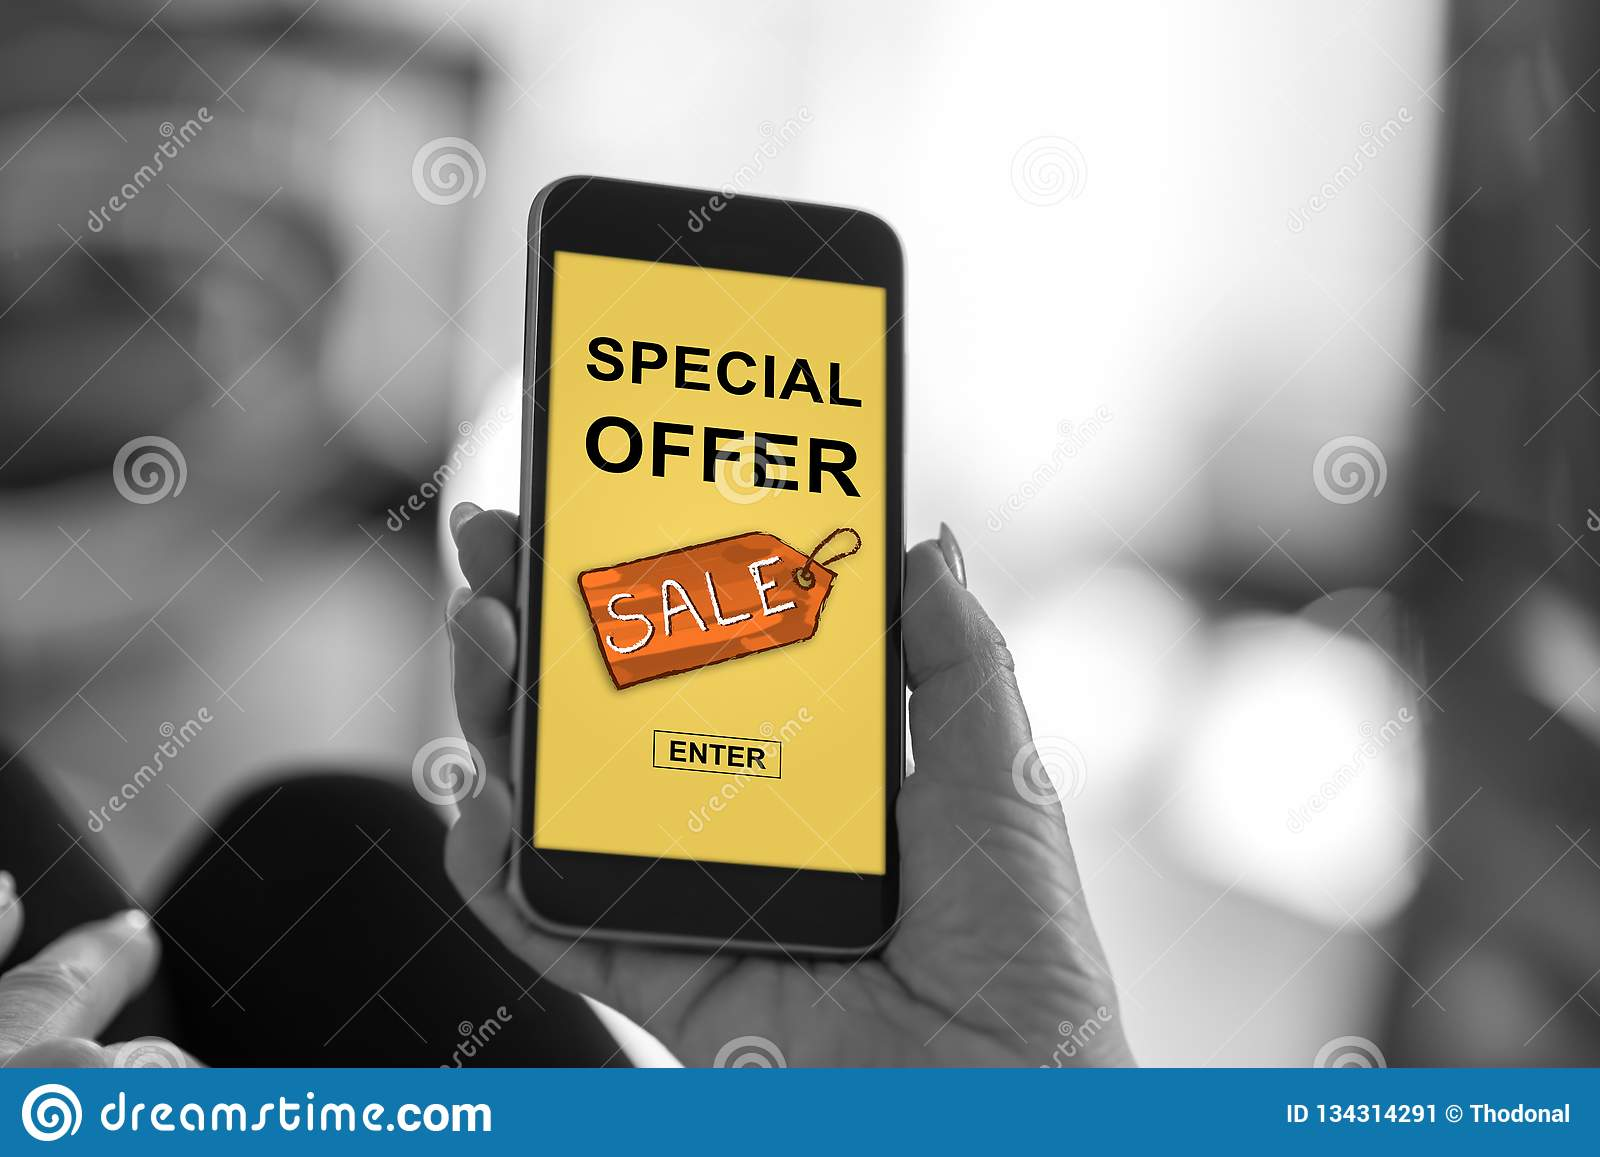 Special offer concept on a smartphone